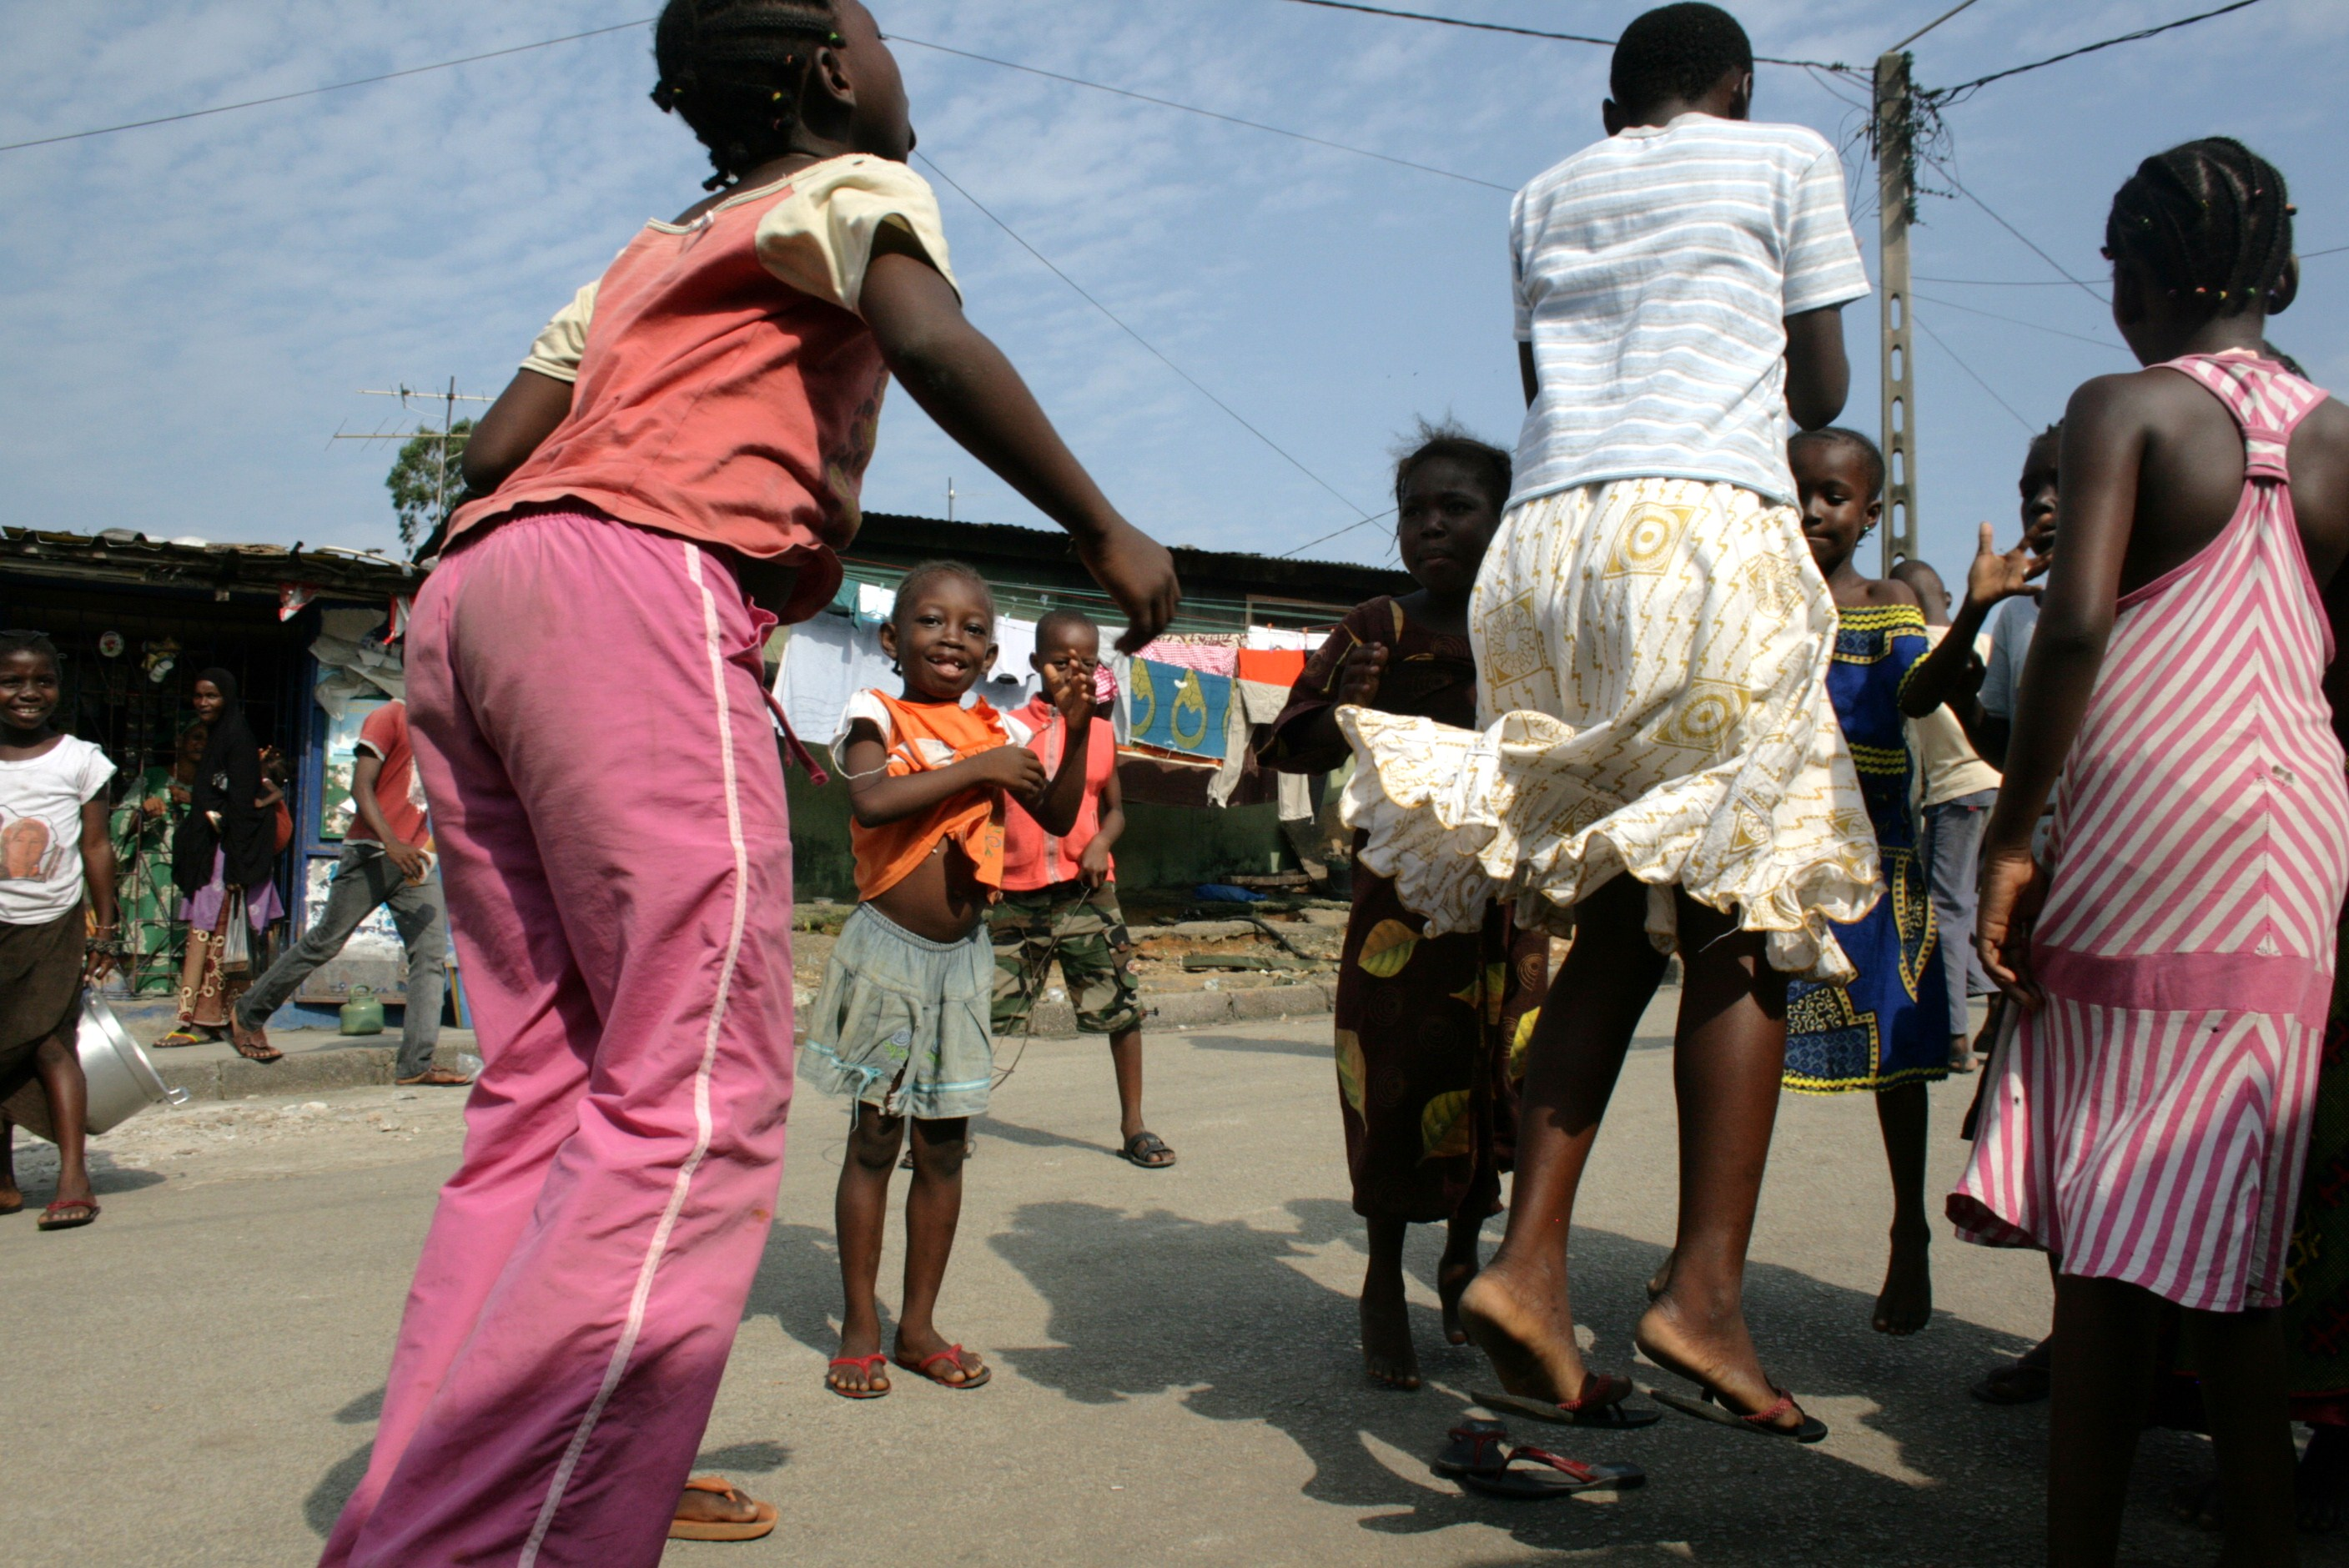 Girls playing in the Adjamé neighbourhood of Côte d'Ivoire's commercial capital, Abidjan. July 2011